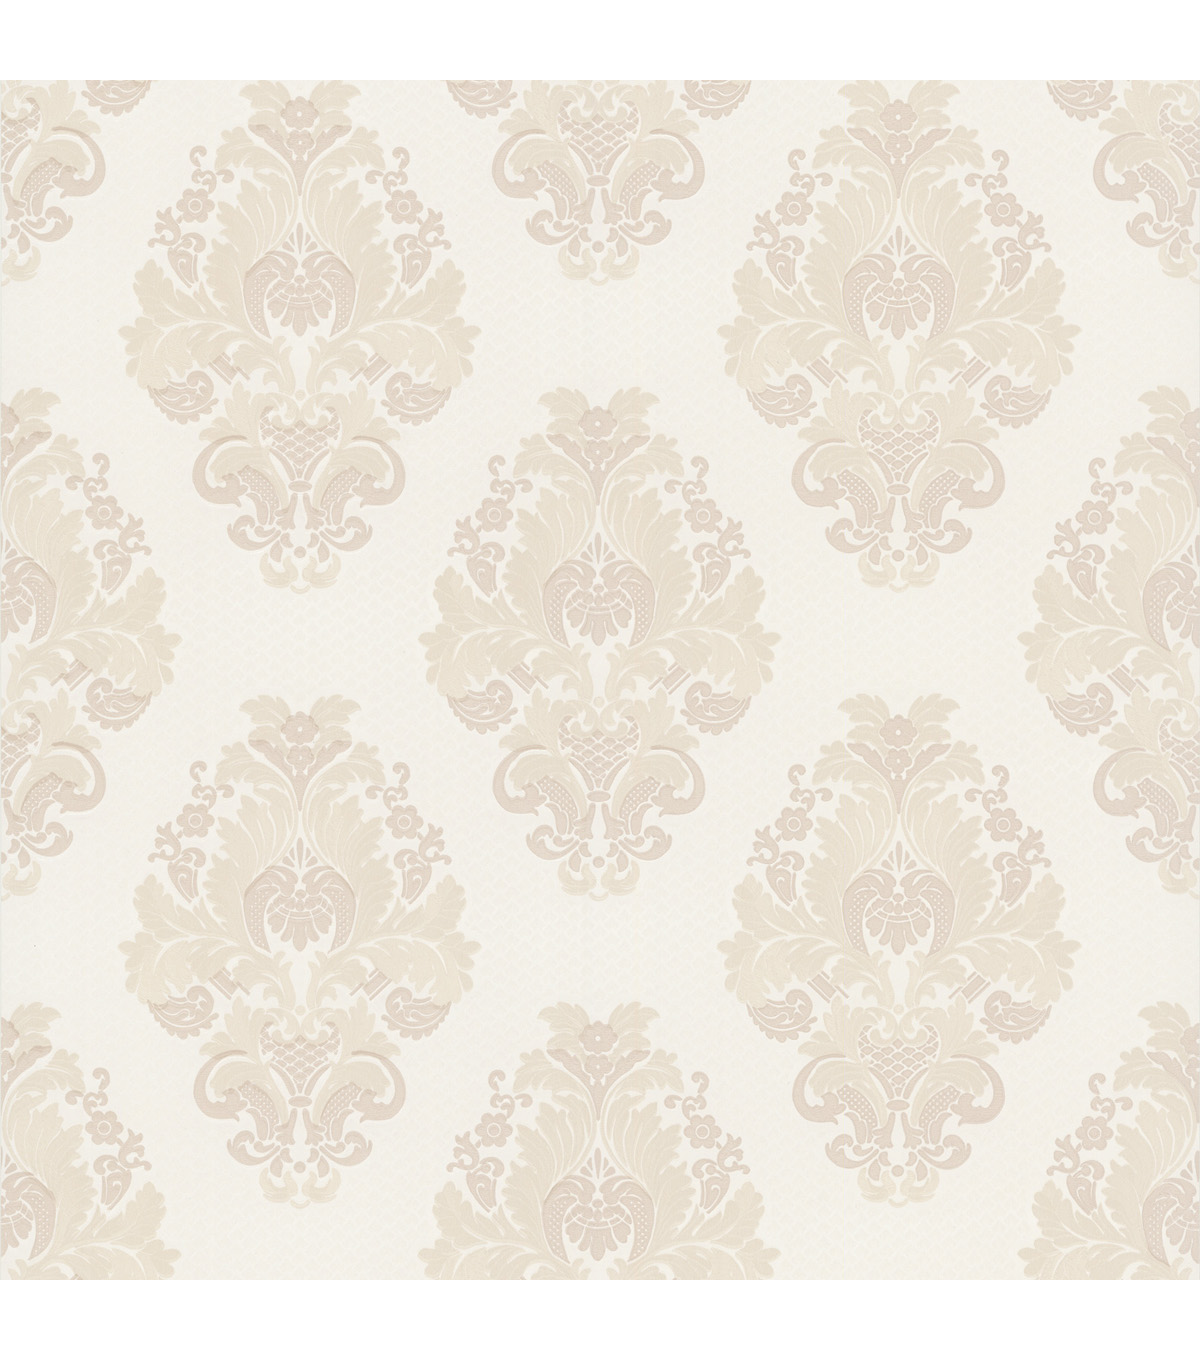 Bromley White Satin Damask Wallpaper Sample